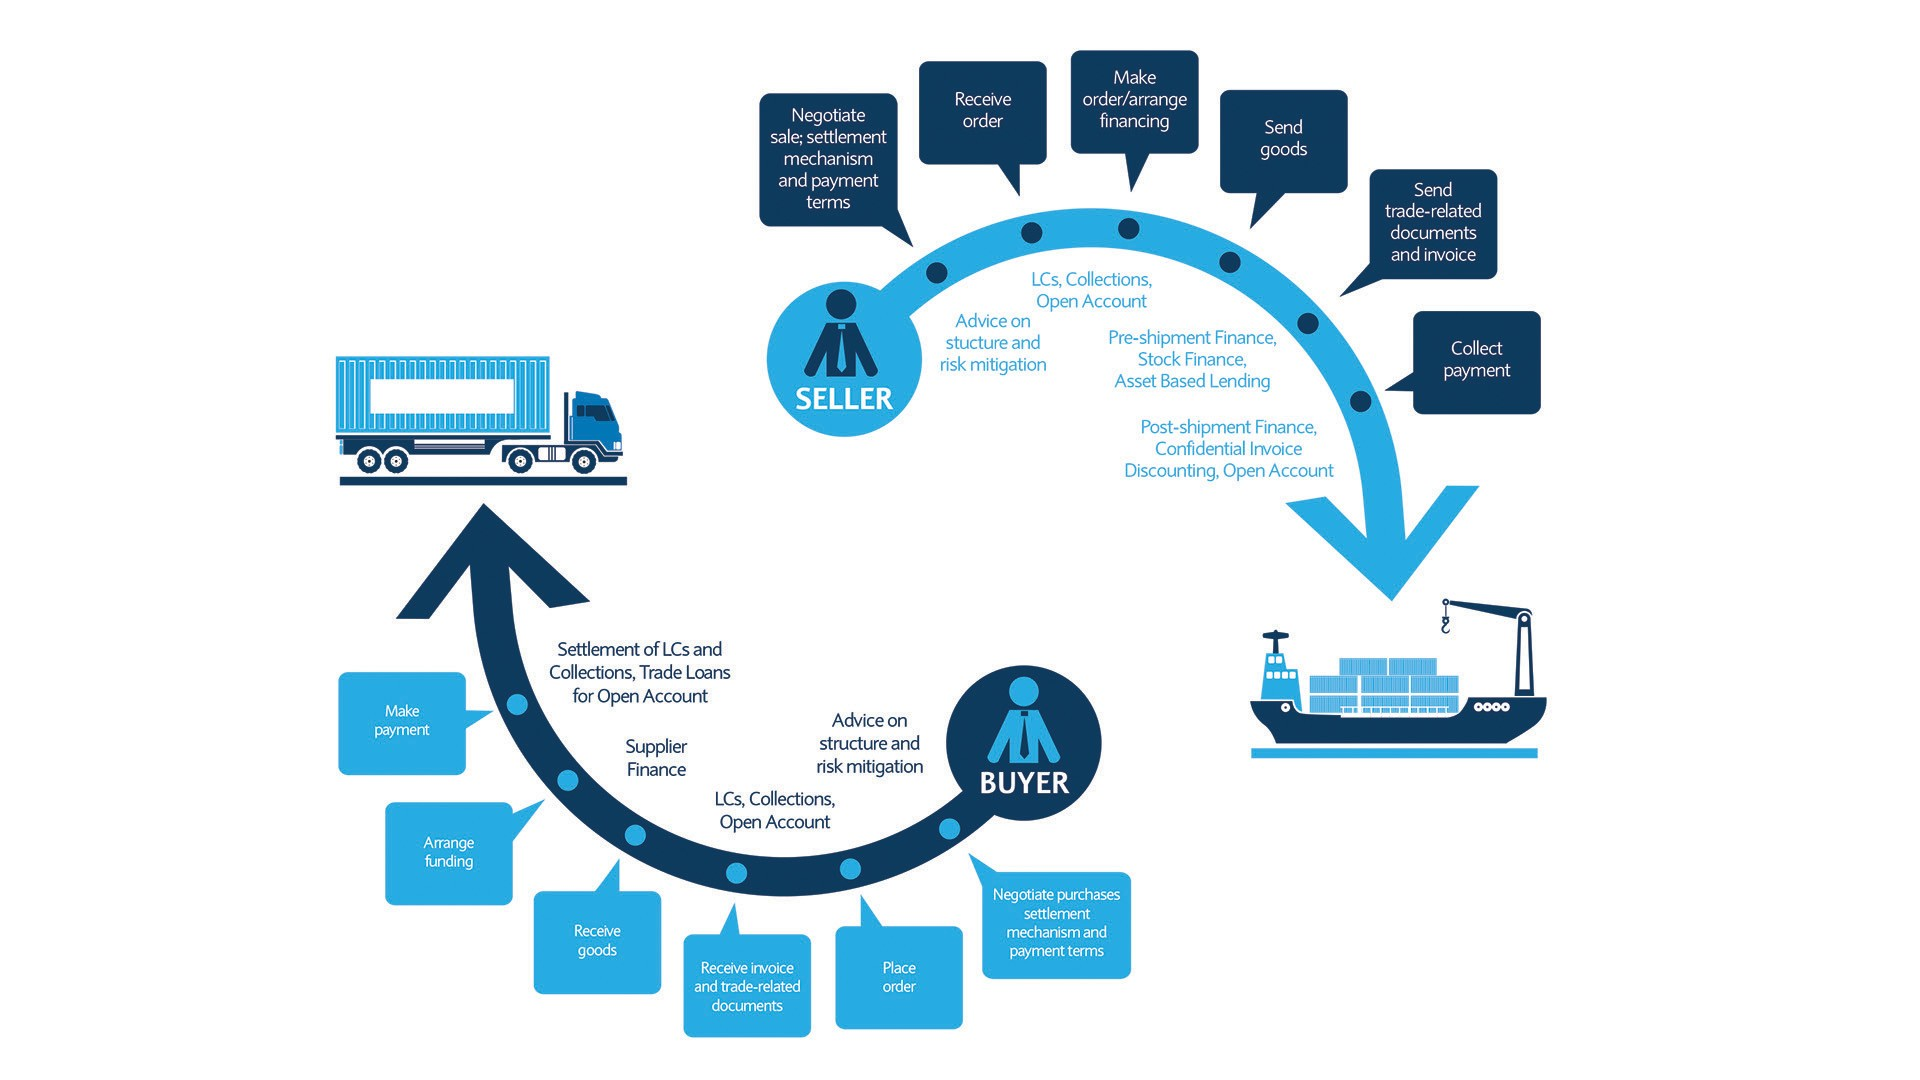 How Barclays support your business' exporting needs throughout the trade cycle.